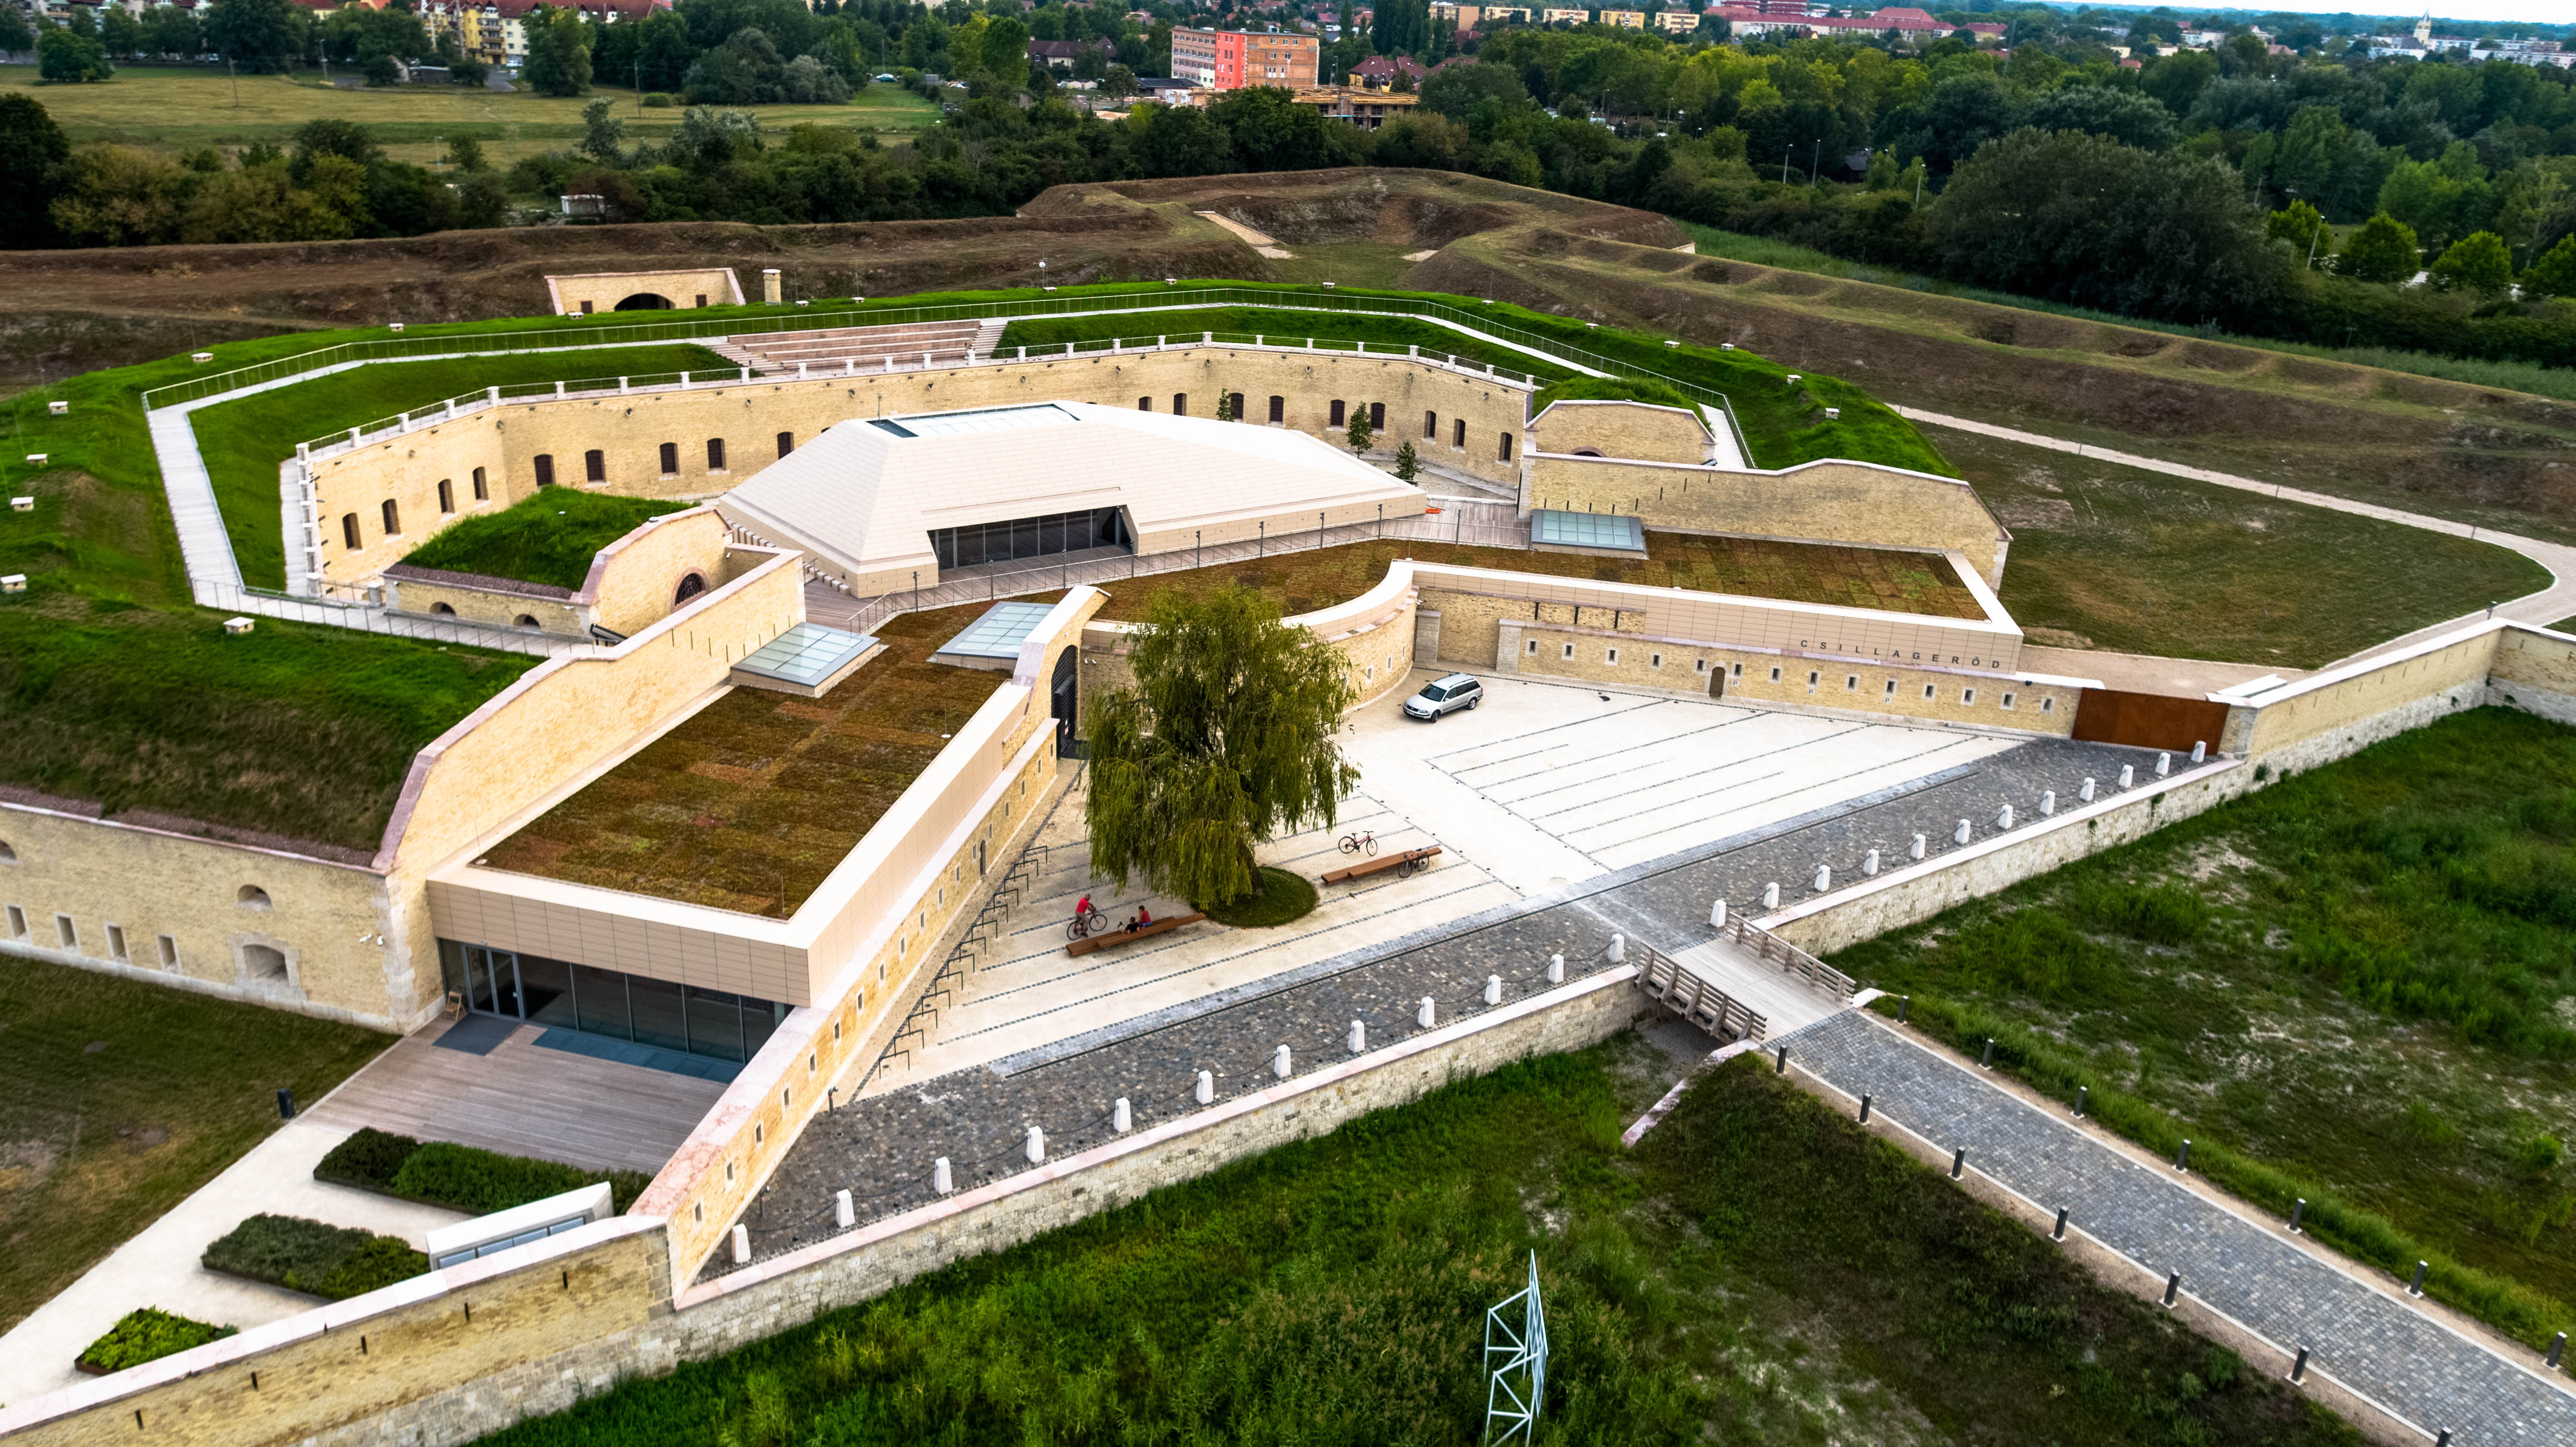 The renovation and expansion of the Komárom Star Fortress has been completed